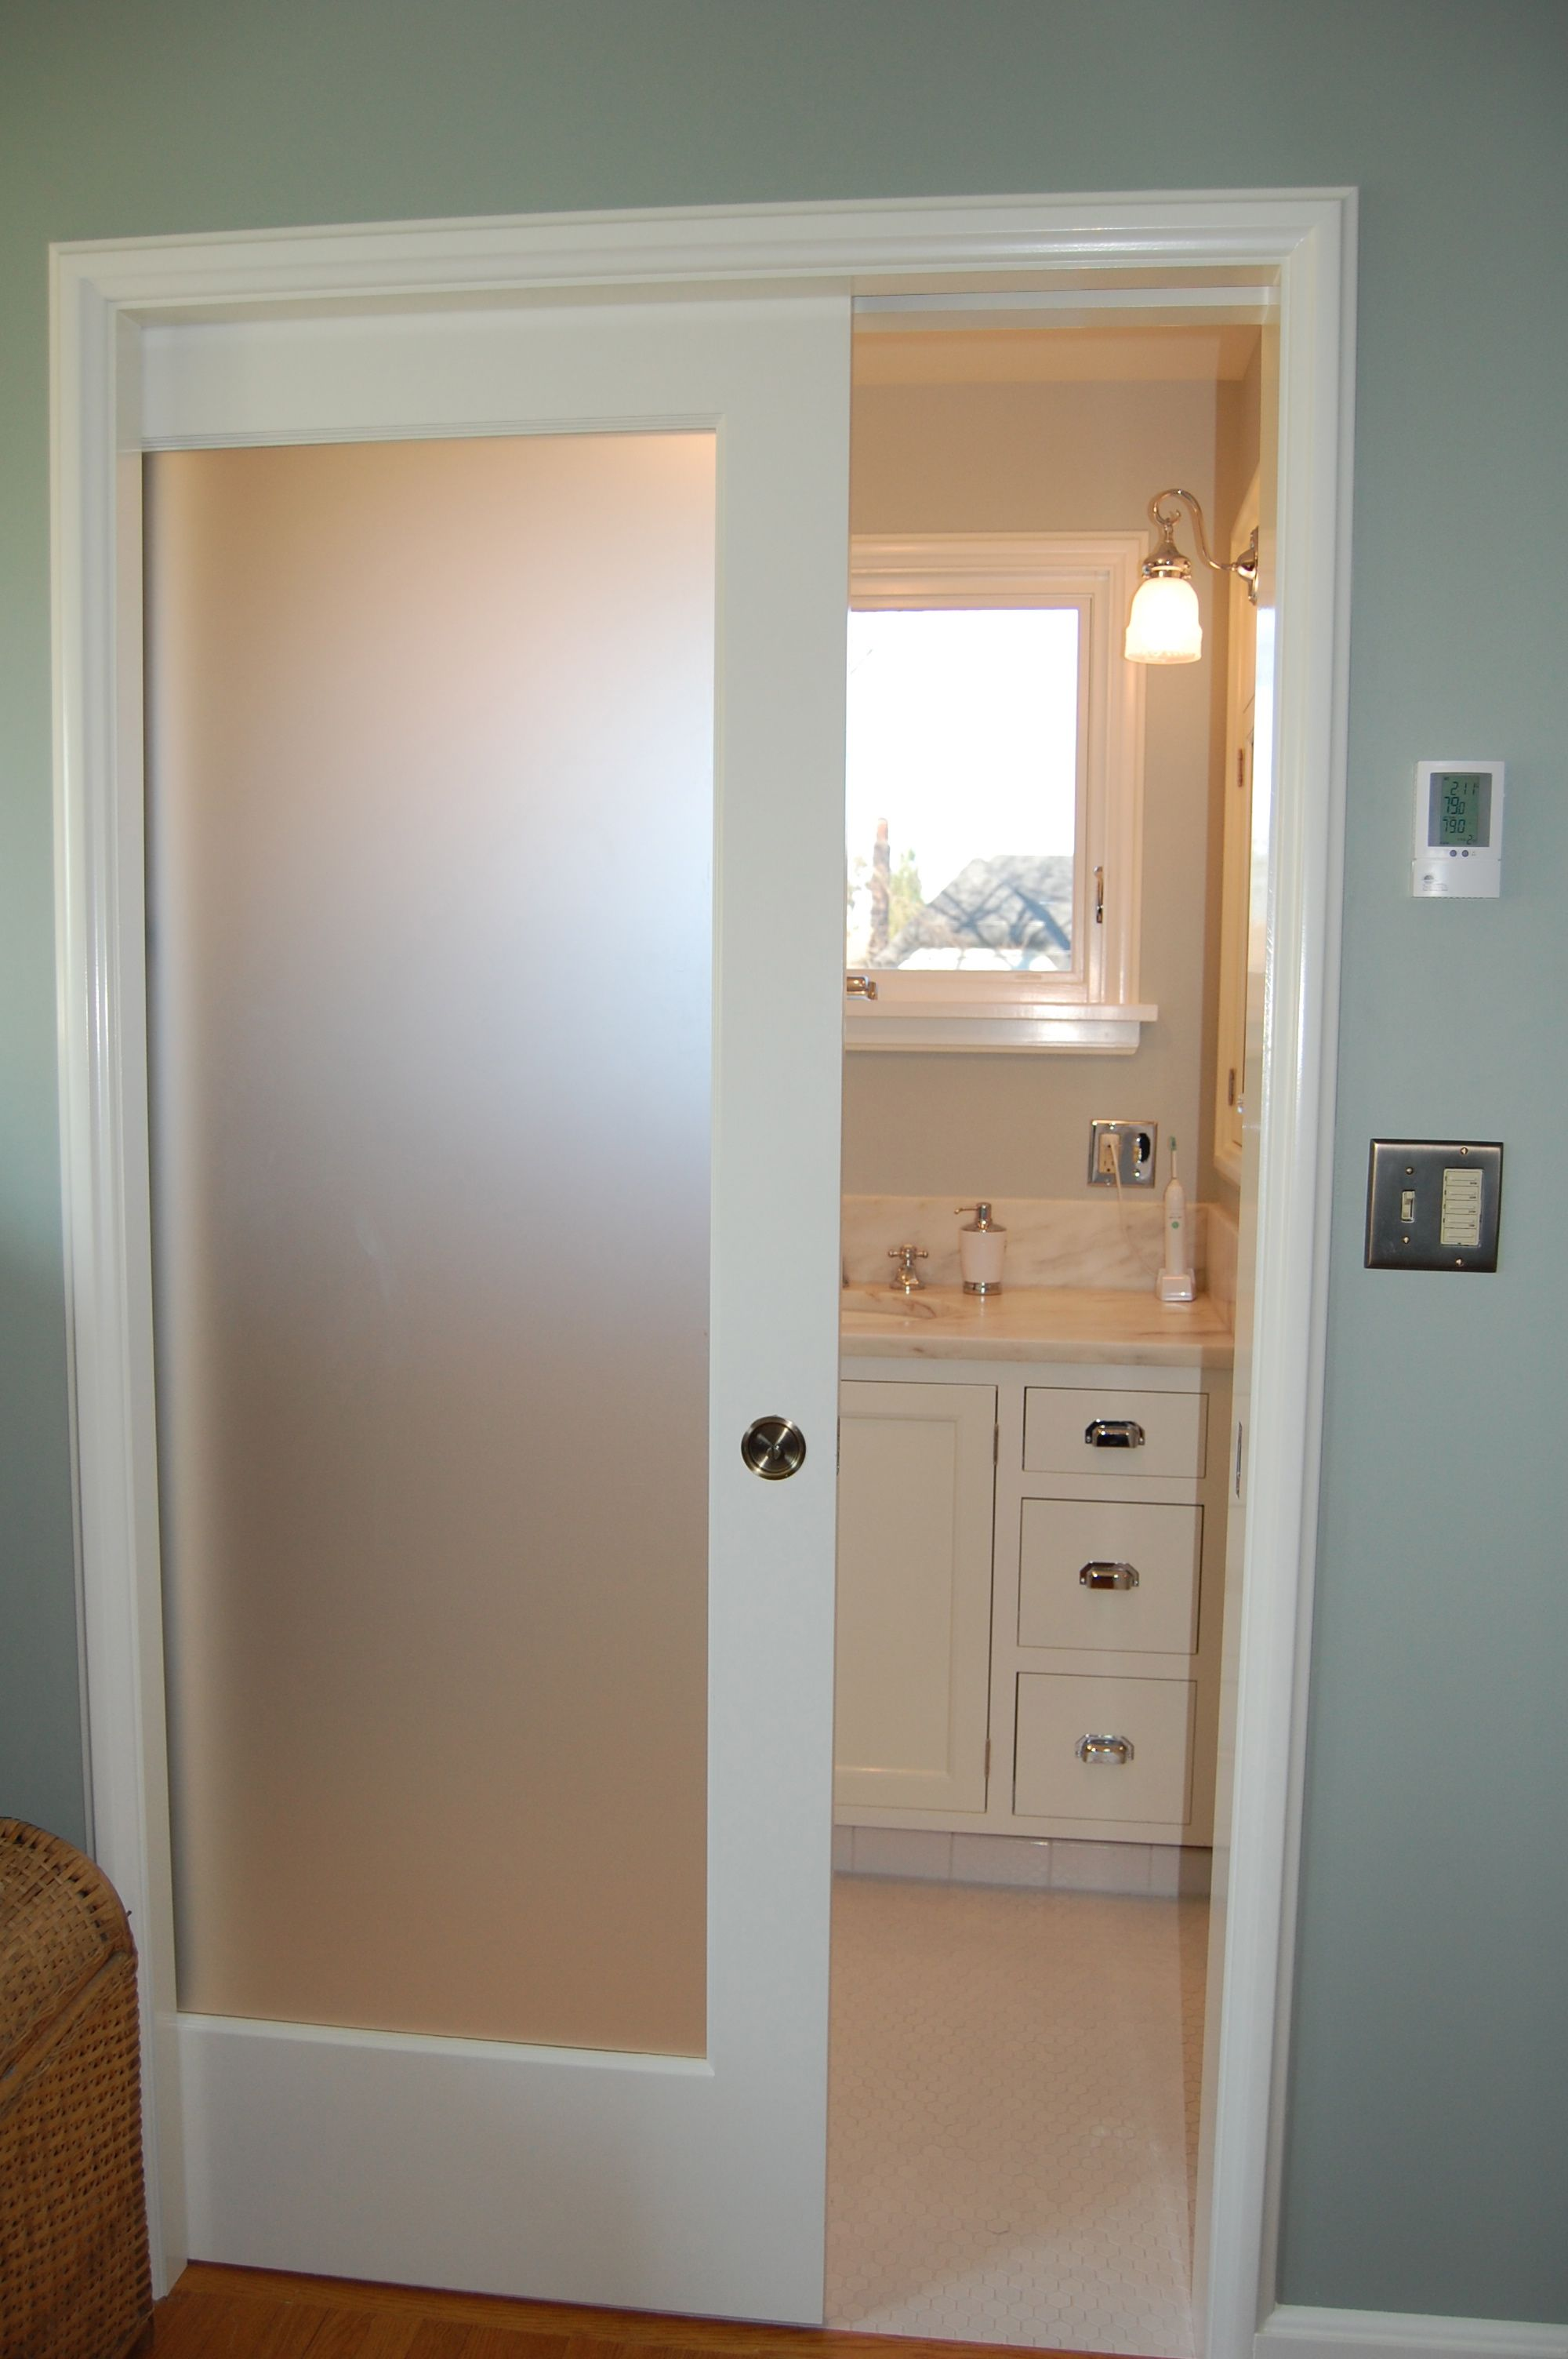 Alameda Remodel is Complete More Pocket doors Doors and Glass